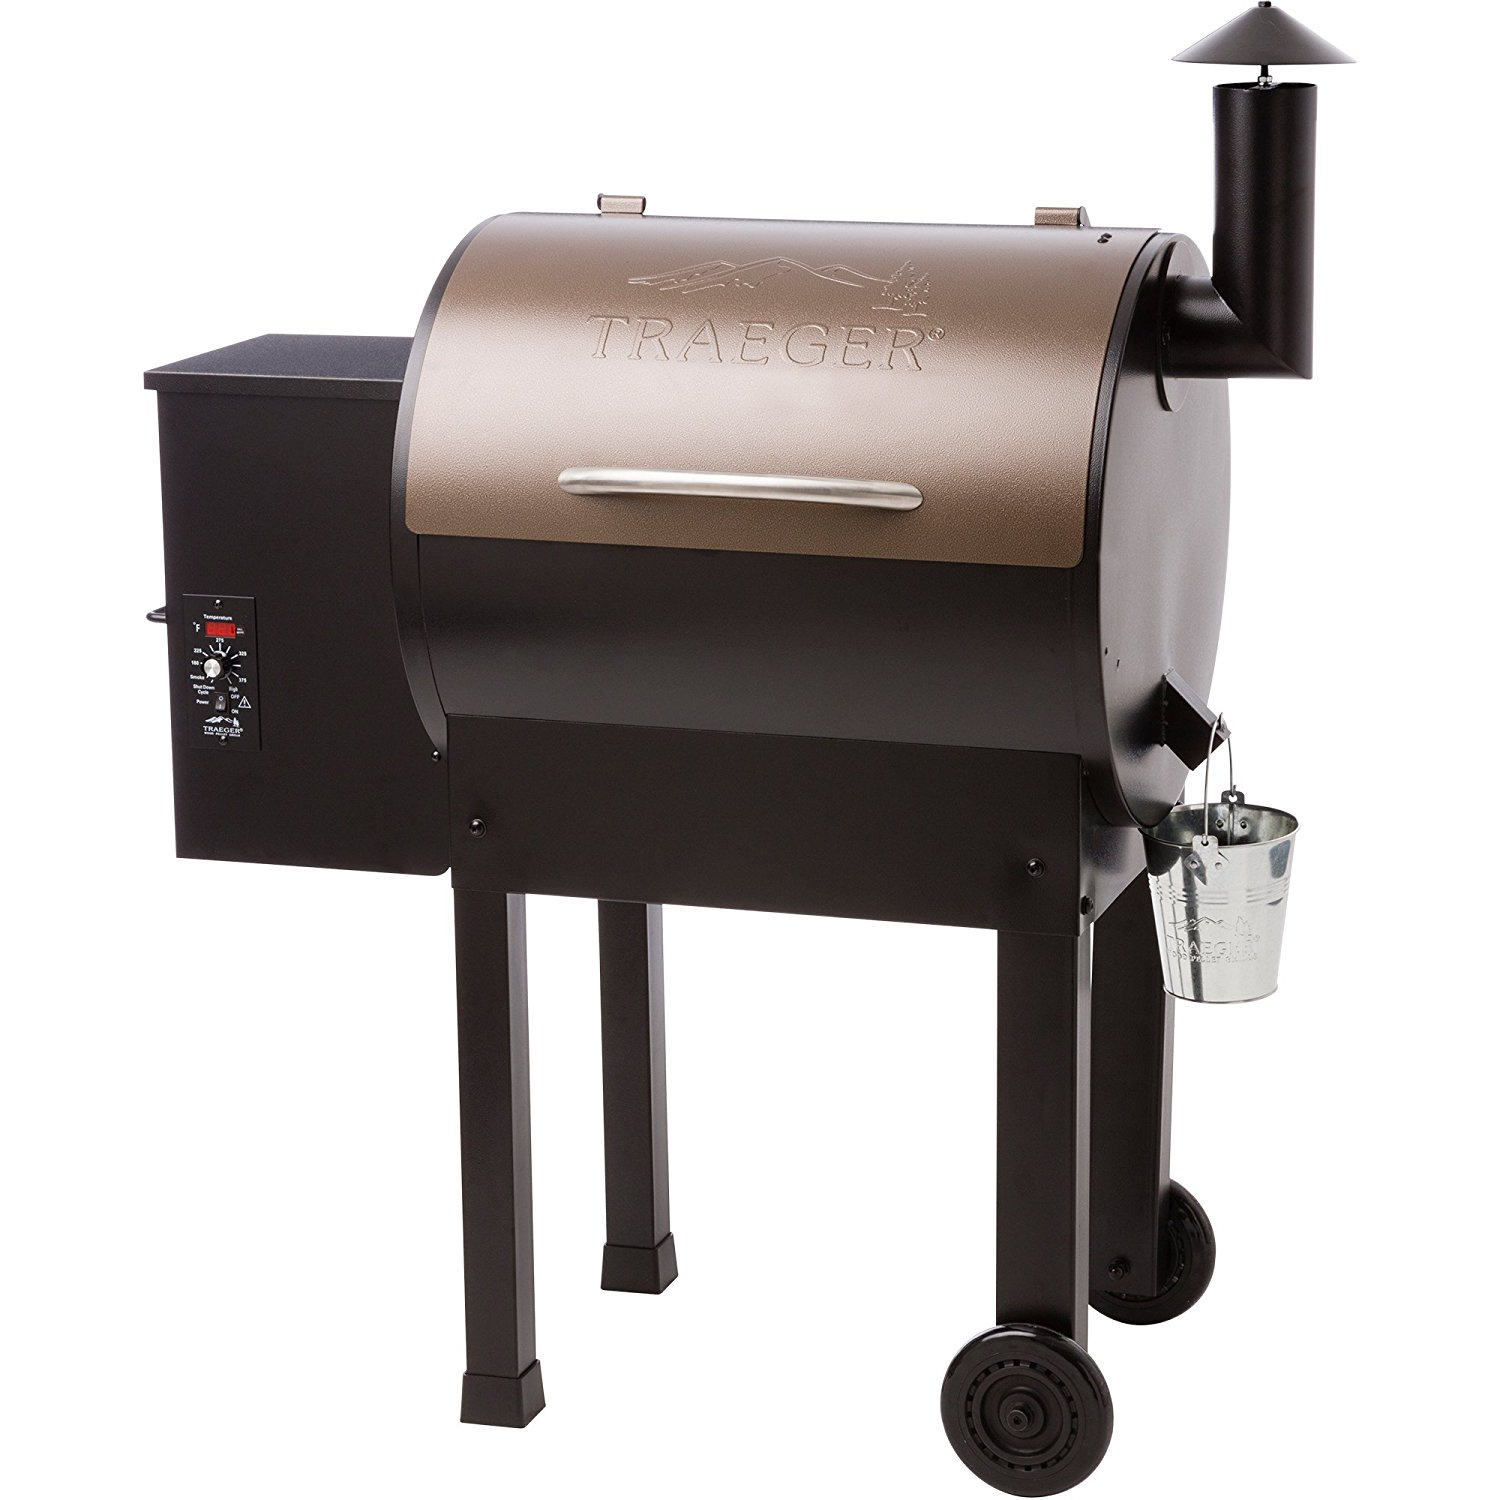 Traeger 22 Wood Pellet Grill and Smoker Smoke Bake Braise Barbecue BBQ Cooking